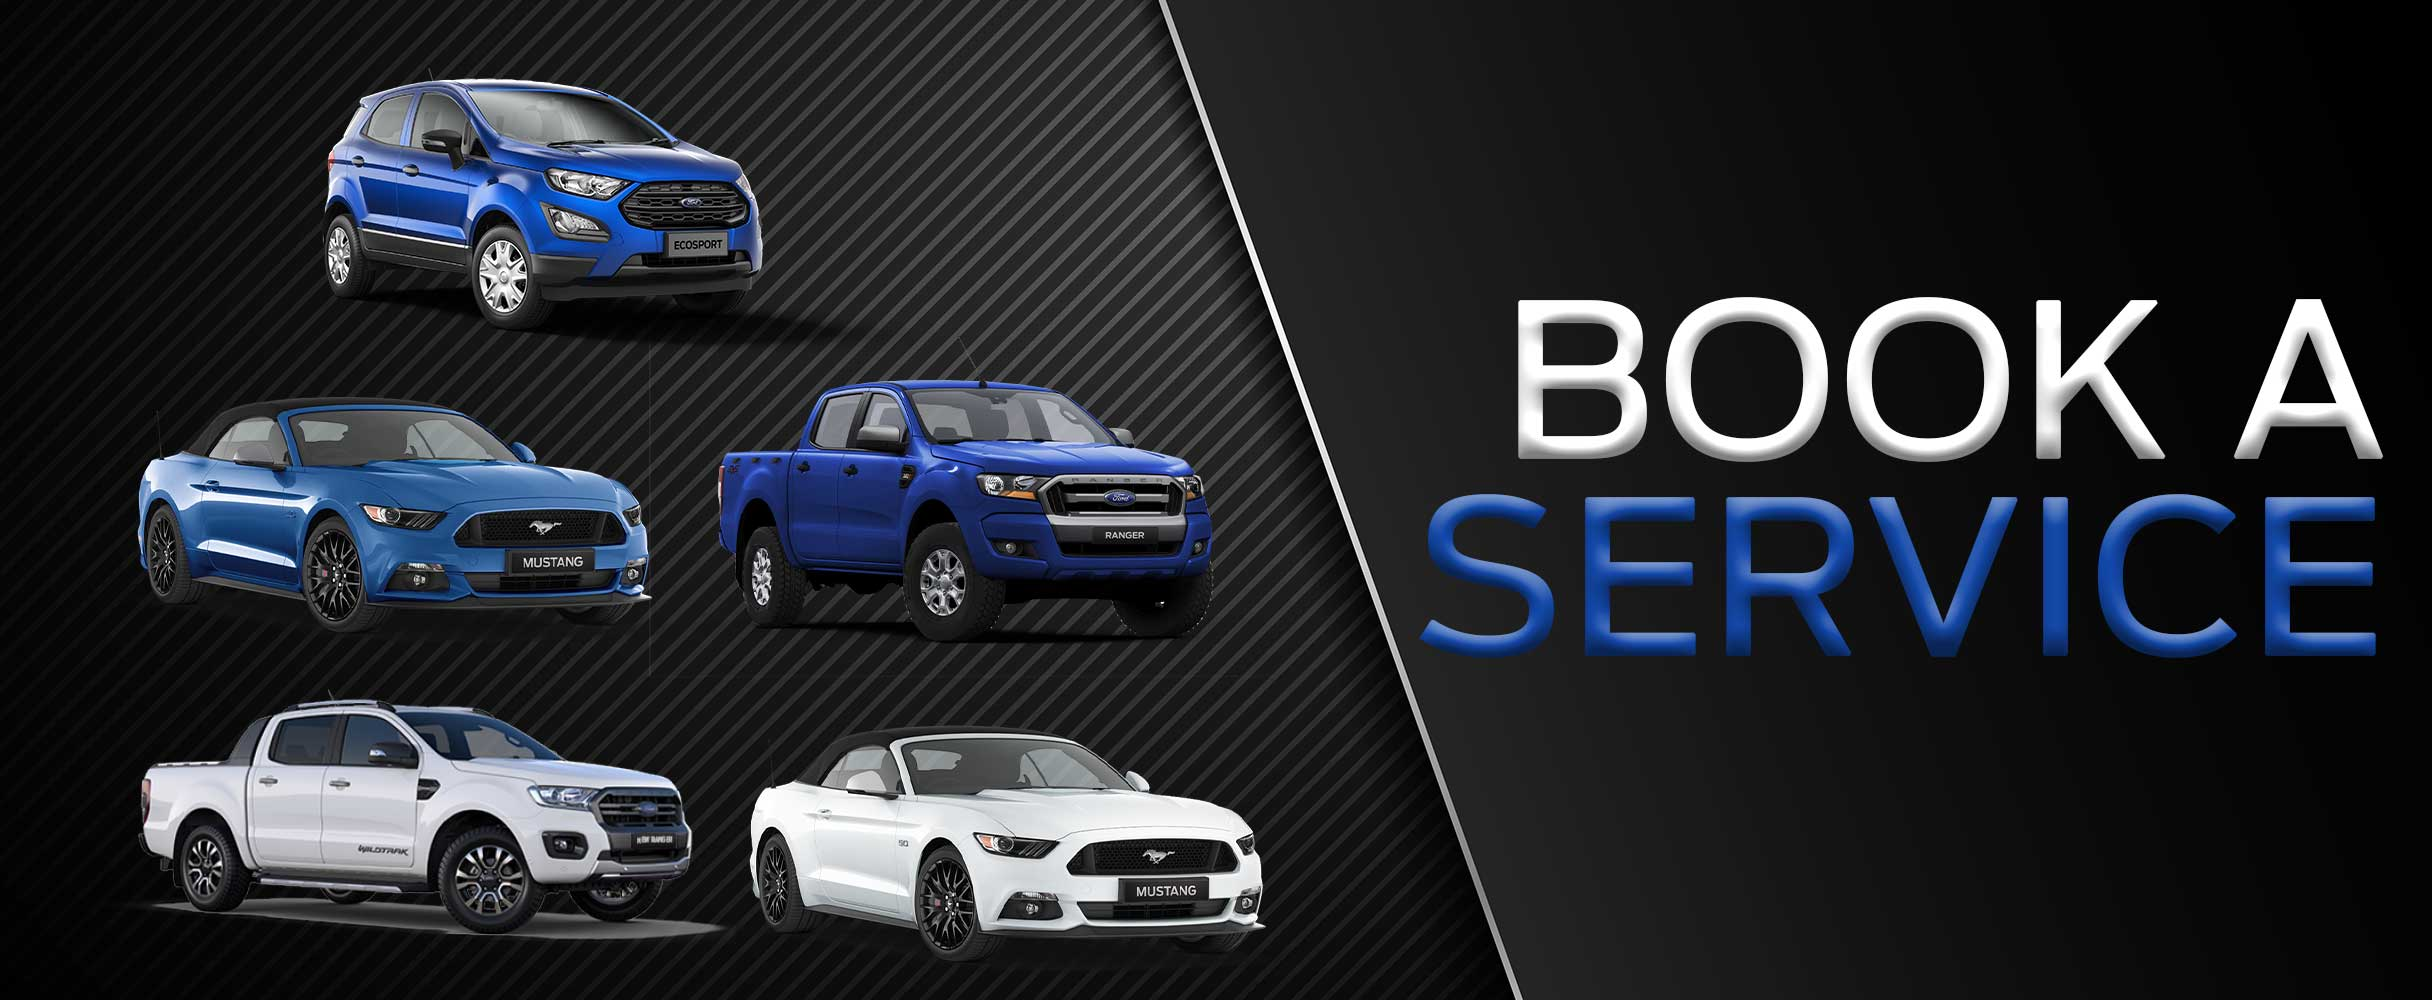 book a service at ford pietermaritzburg